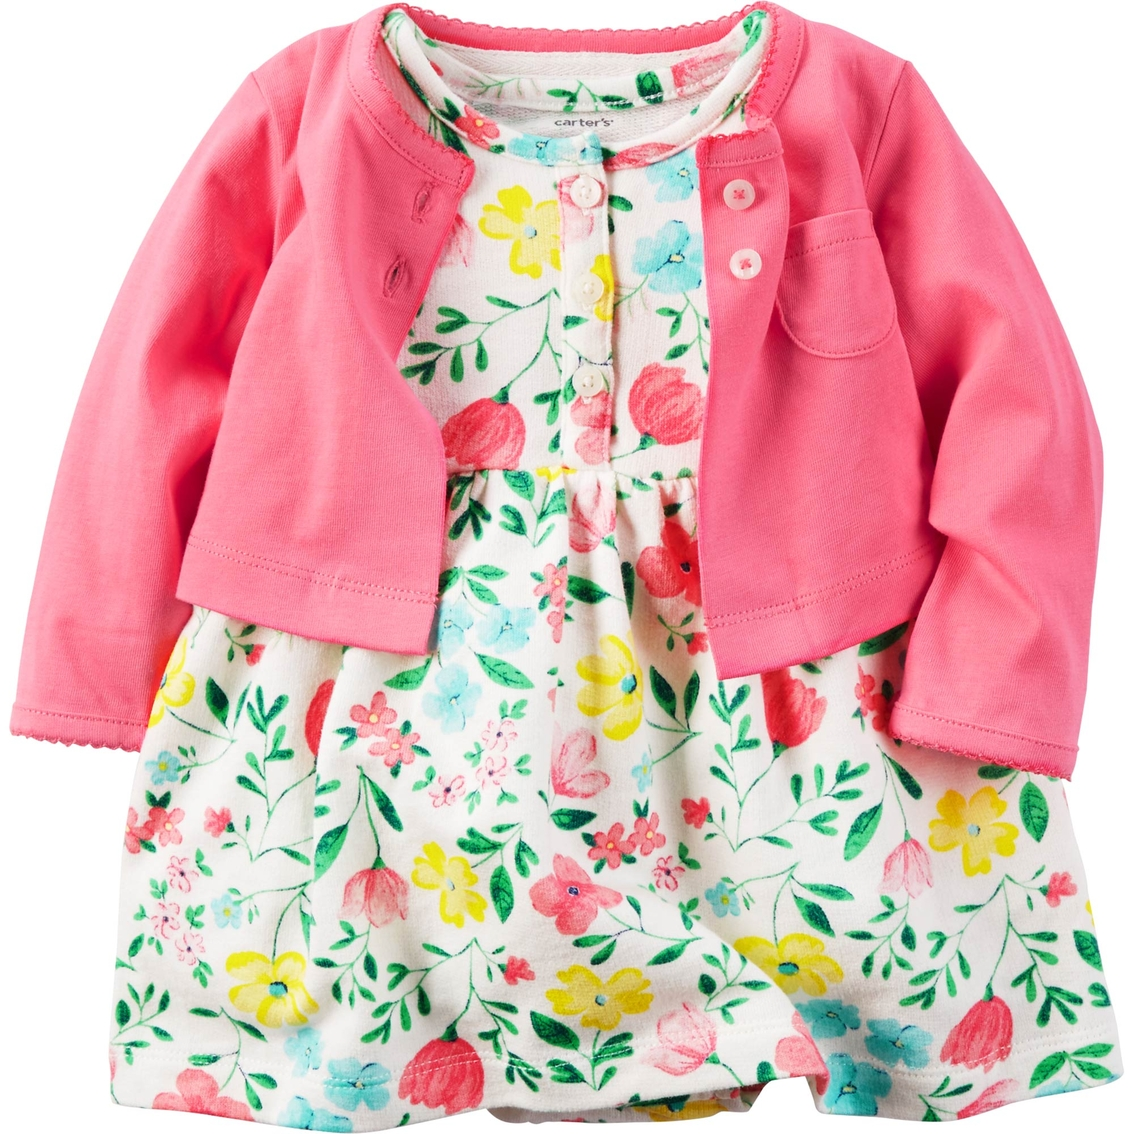 Infant Baby Products Online Shopping Carter 39;s Infant Girls White Floral Dress Pink Cardigan